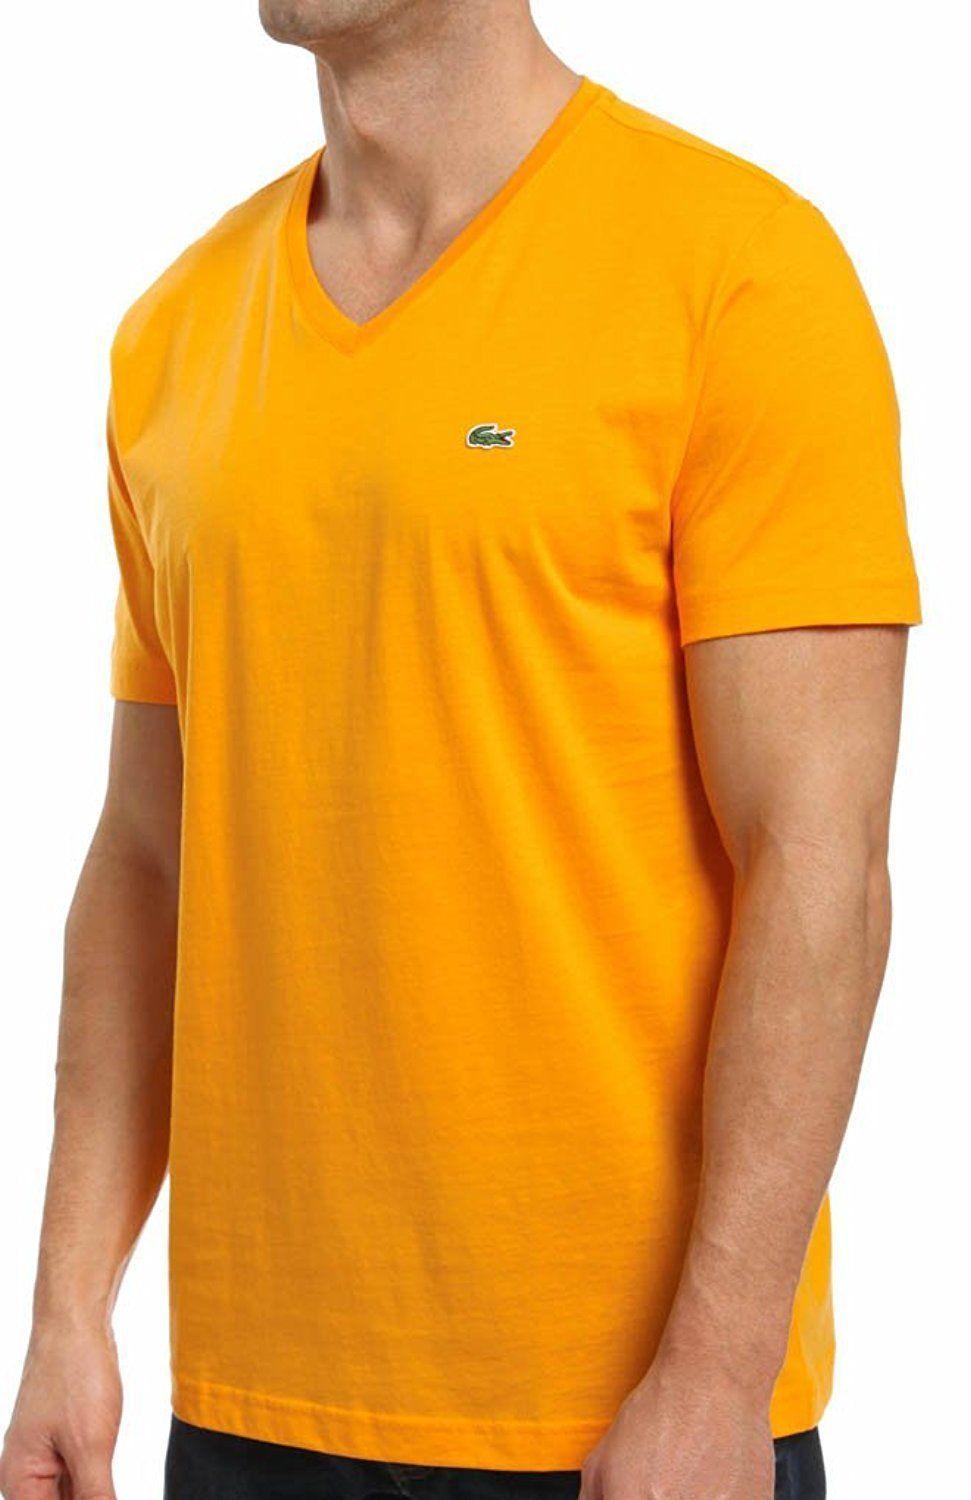 Lacoste Men's Sport Athletic Pima Cotton V-Neck Shirt T-Shirt Tangerine size S